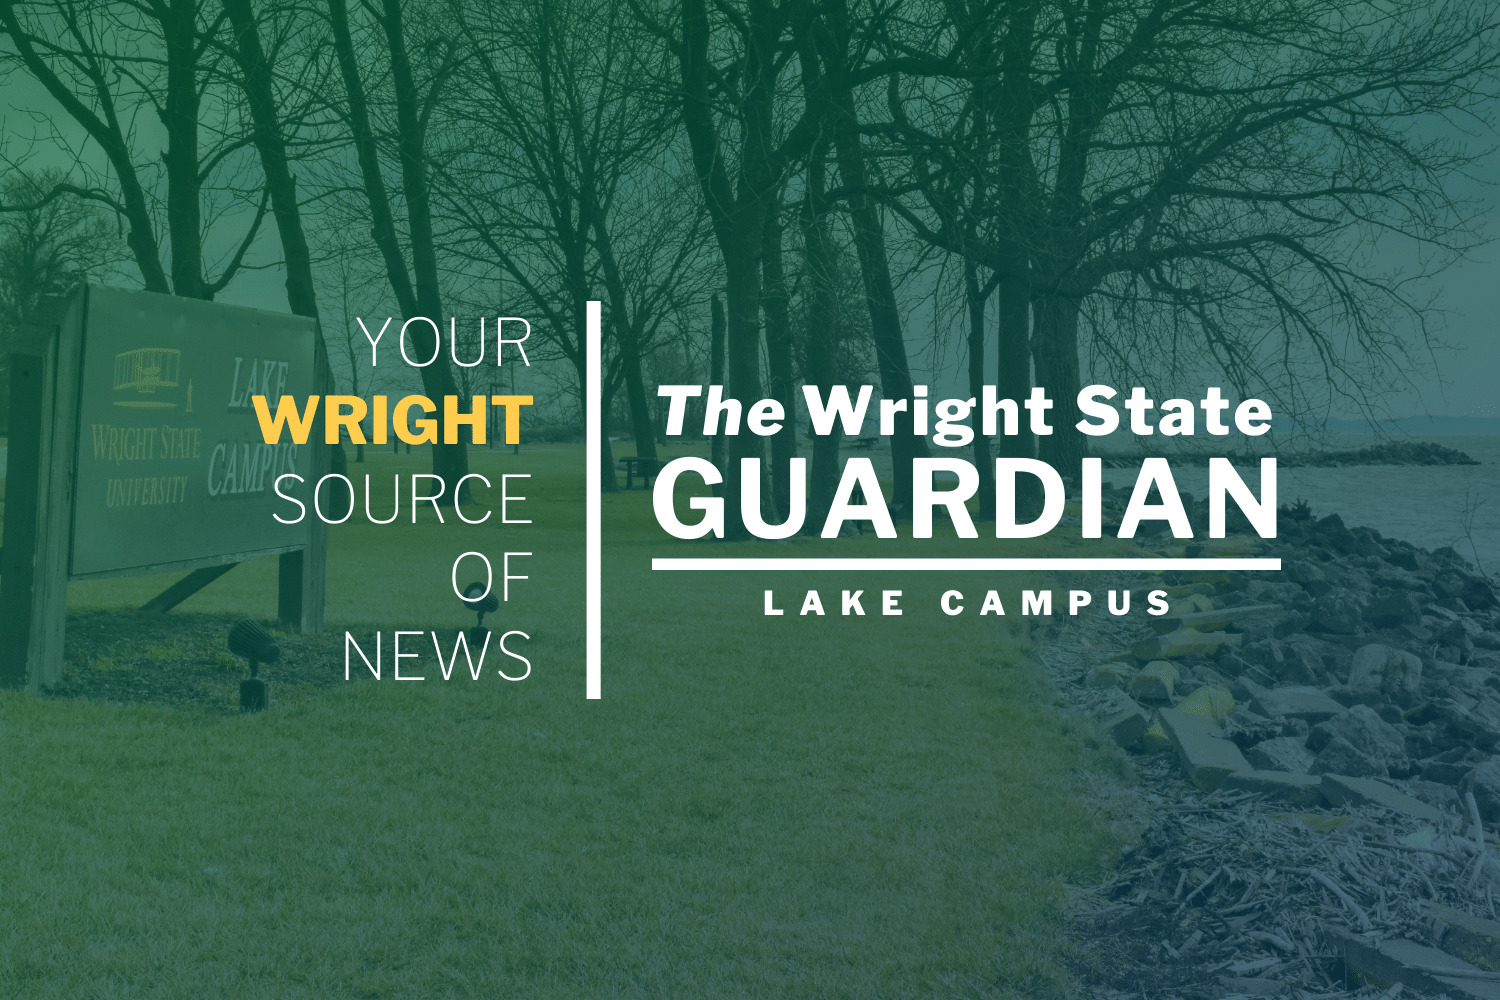 Your Wright Source of News Lake Campus